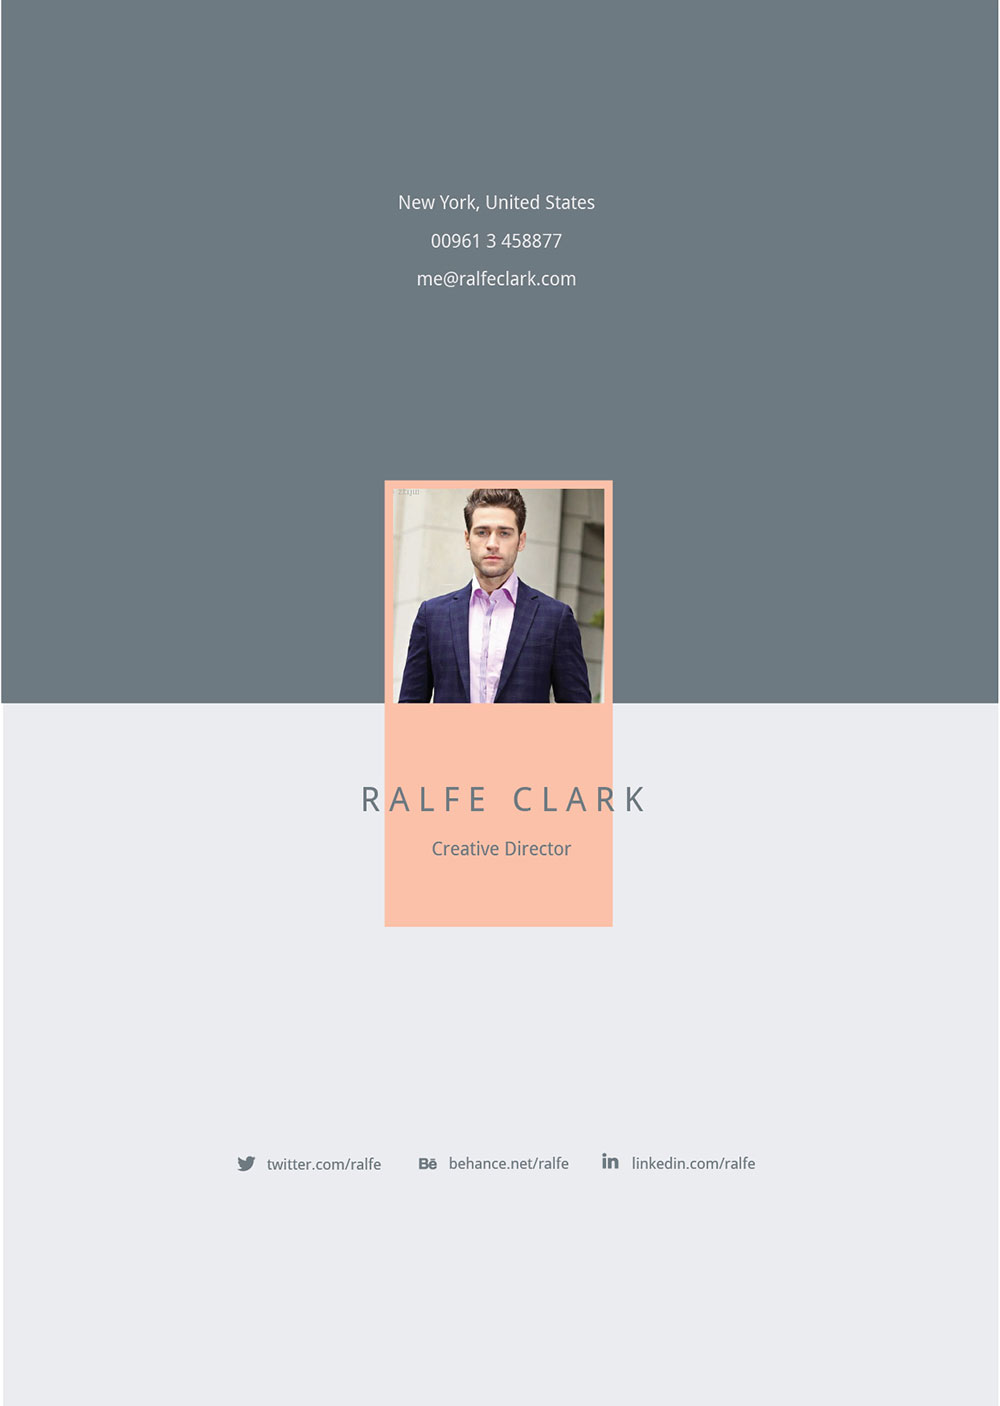 Free-Modern-Resume-Template--Cover-Letter-&-Portfolio-in-Ai-Format-003